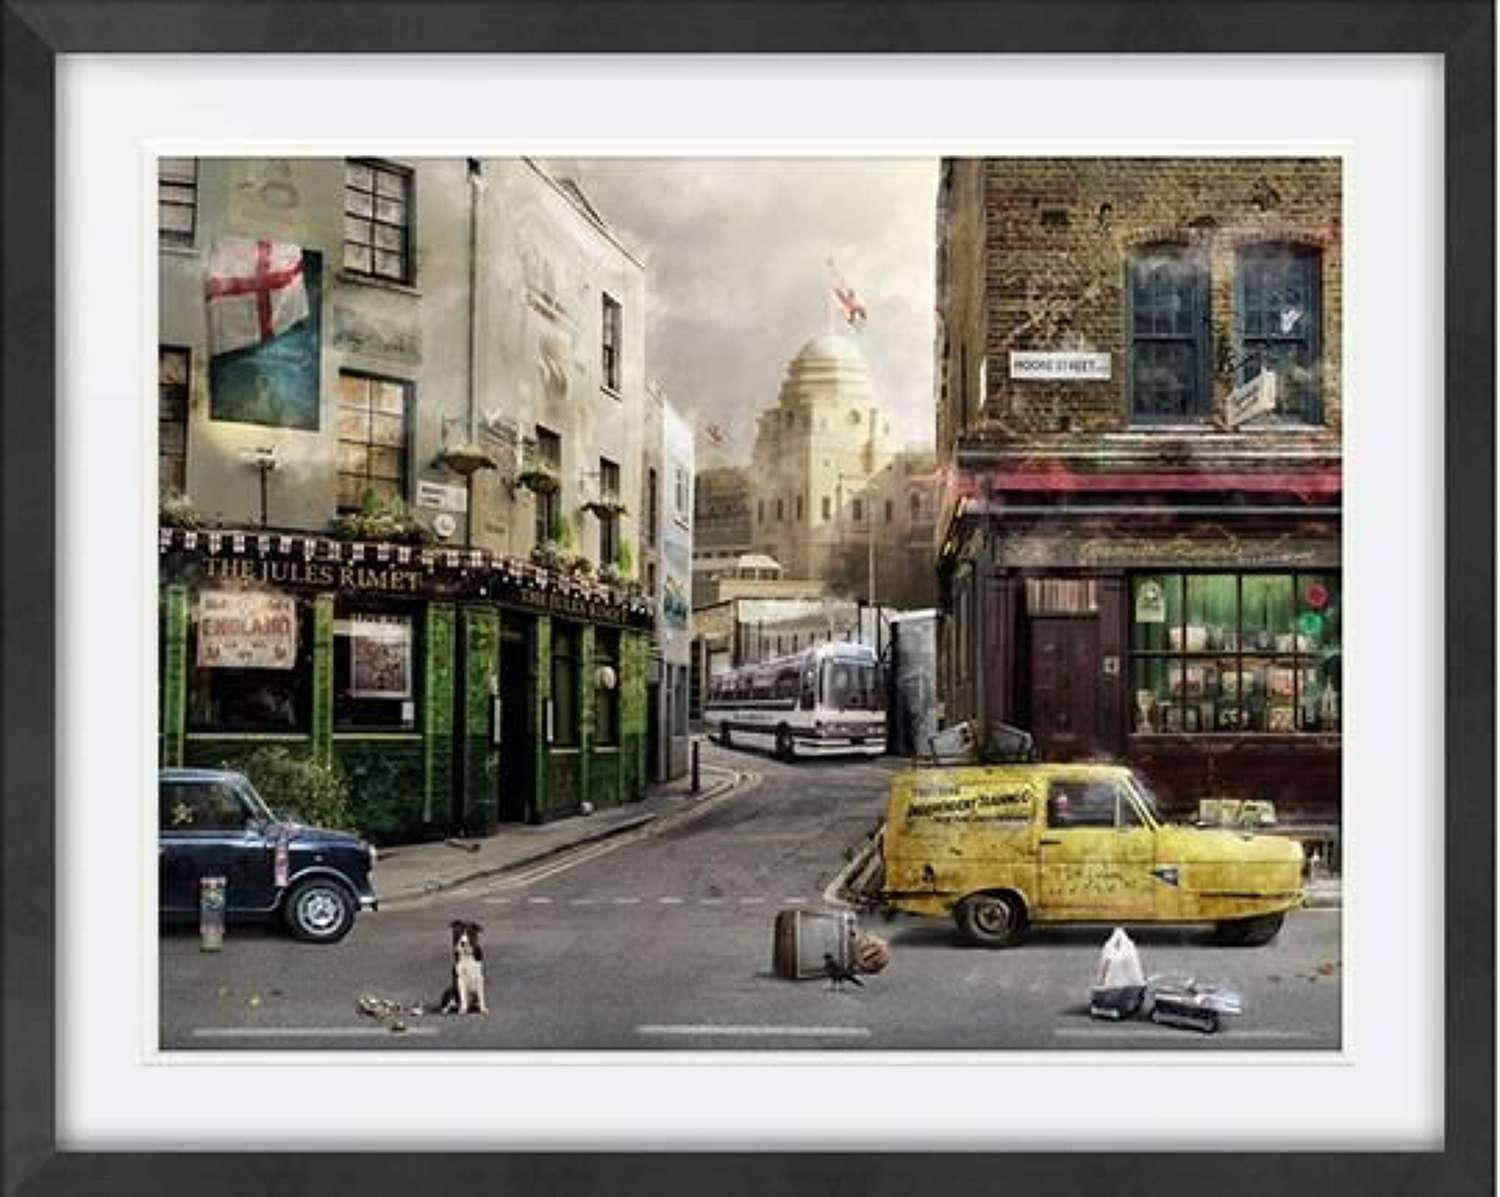 Up For The Cup - Framed Art Print by Mark Davies